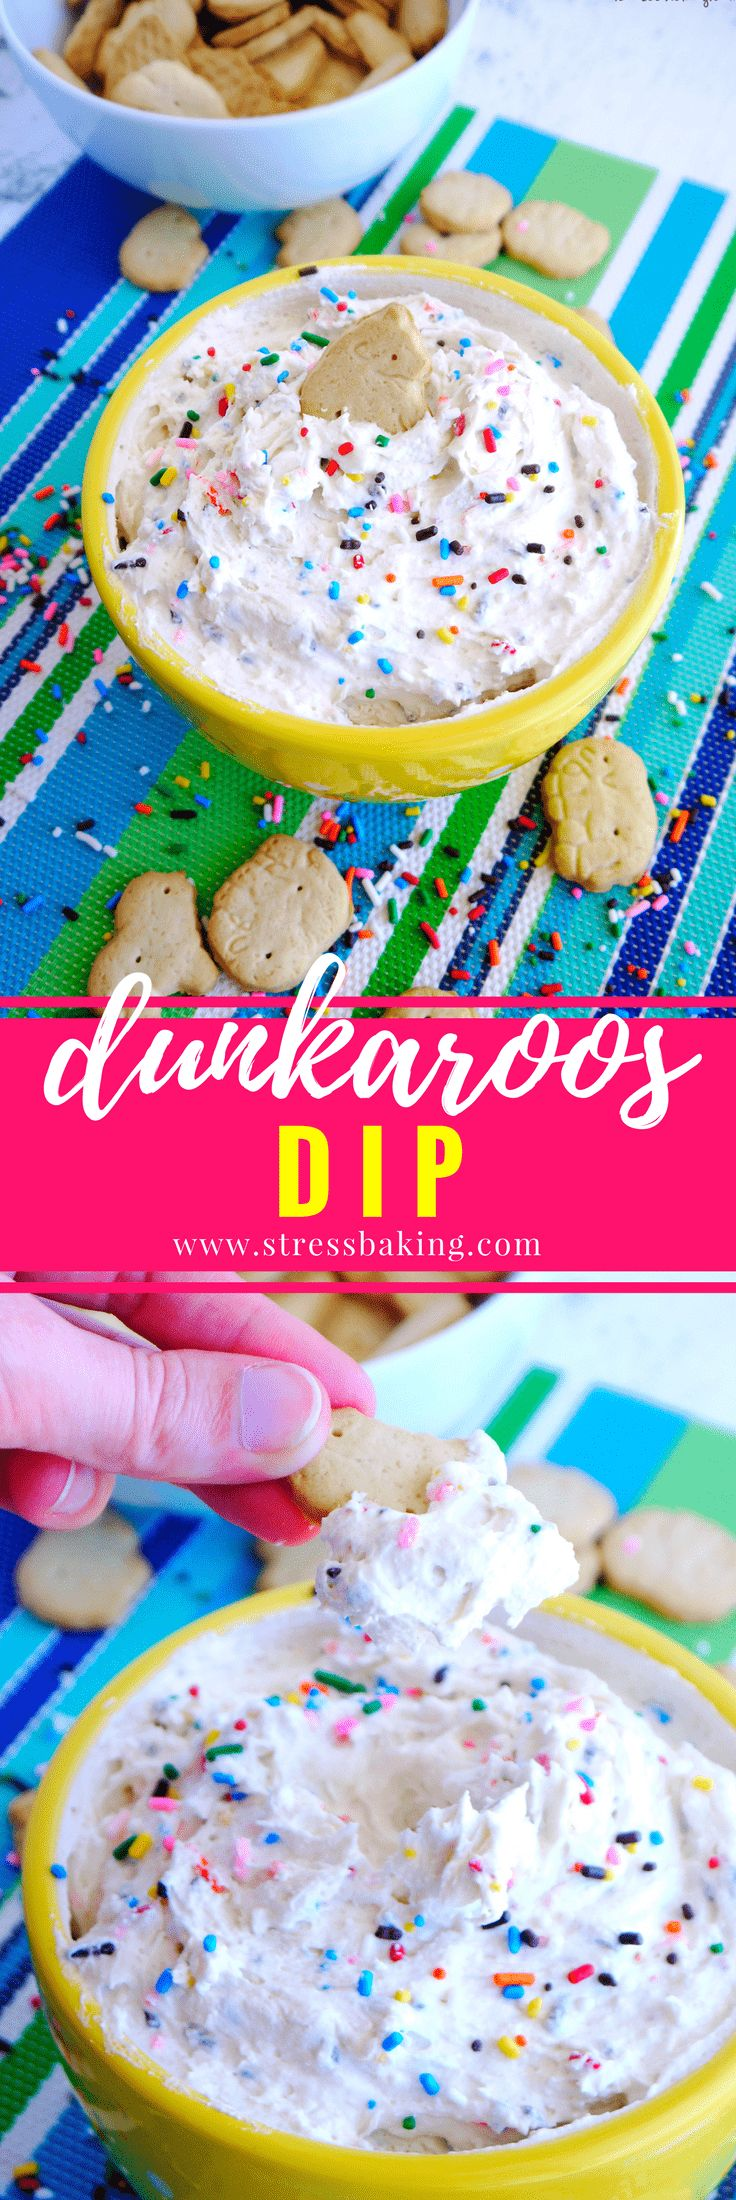 Dunkaroos Dip: A homemade version of the classic childhood treat. Easy, 3-ingredient funfetti flavored dip that's perfect for animal cracker dunking, and loaded with sprinkles! | stressbaking.com @stressbaking #stressbaking #dunkaroos #sprinkles #dip #dessert #nobake #easydessert #funfetti via @stressbaking